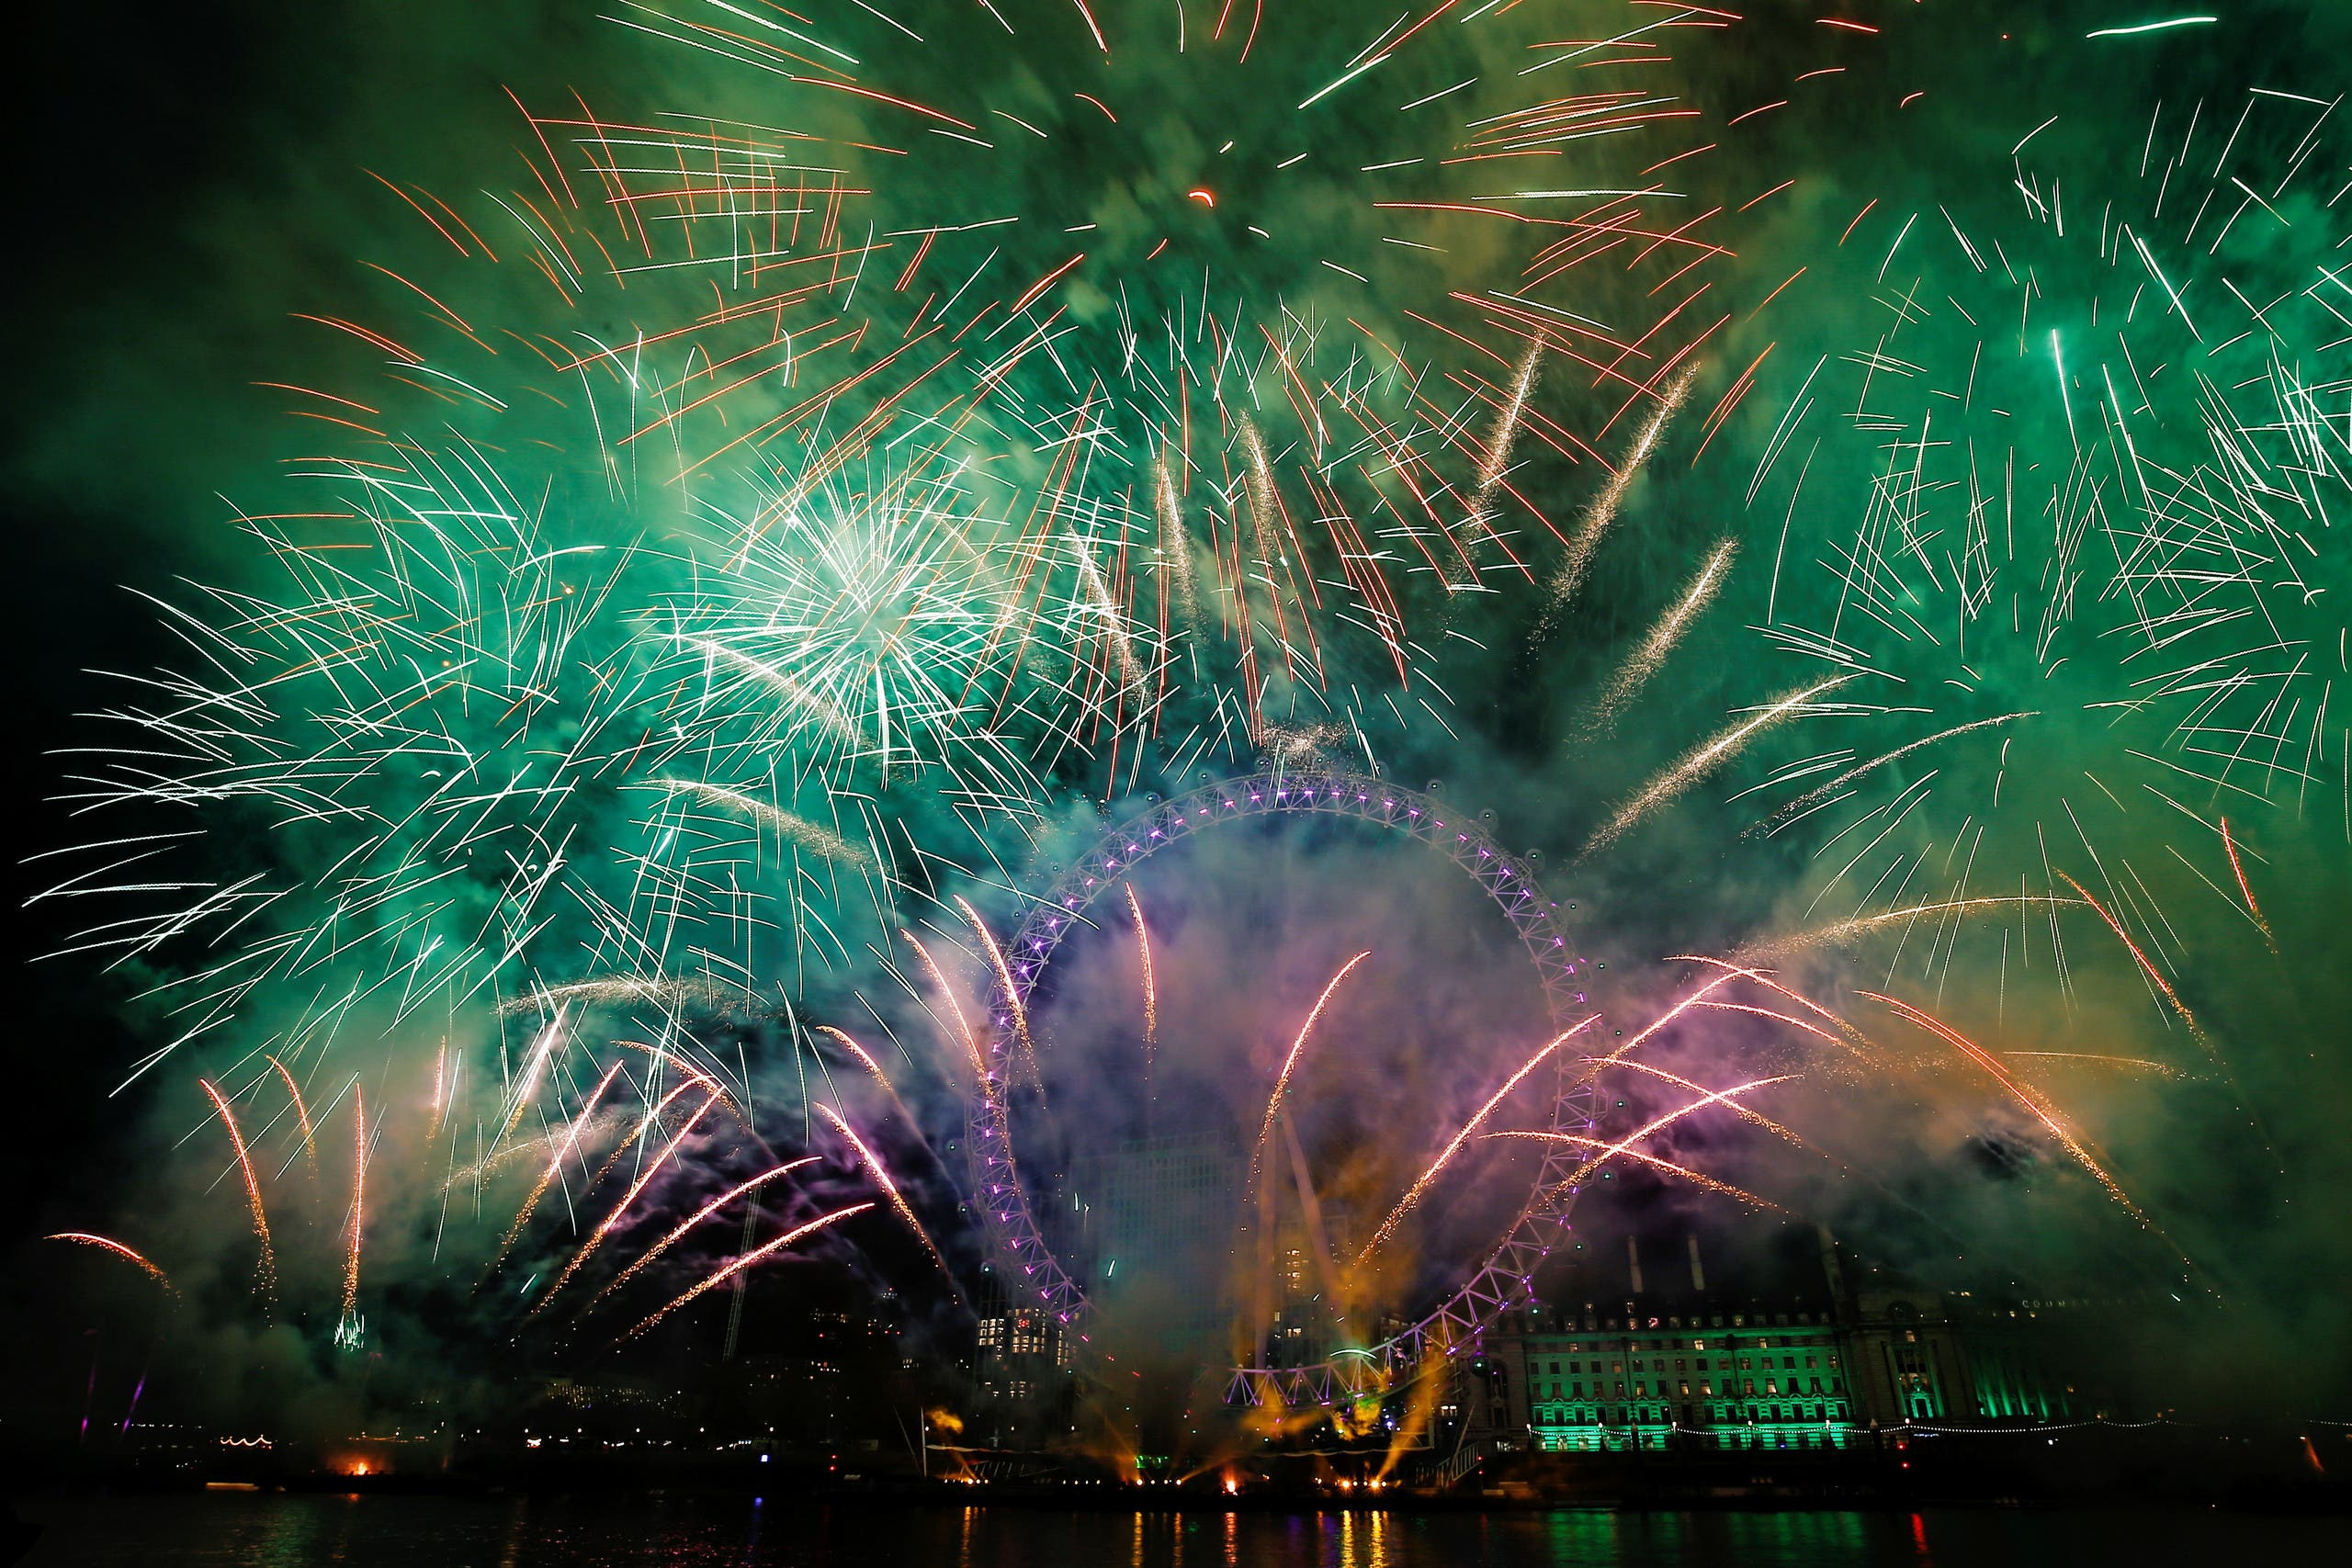 Fireworks explode over the London Eye wheel during New Year celebrations in central London (AP)